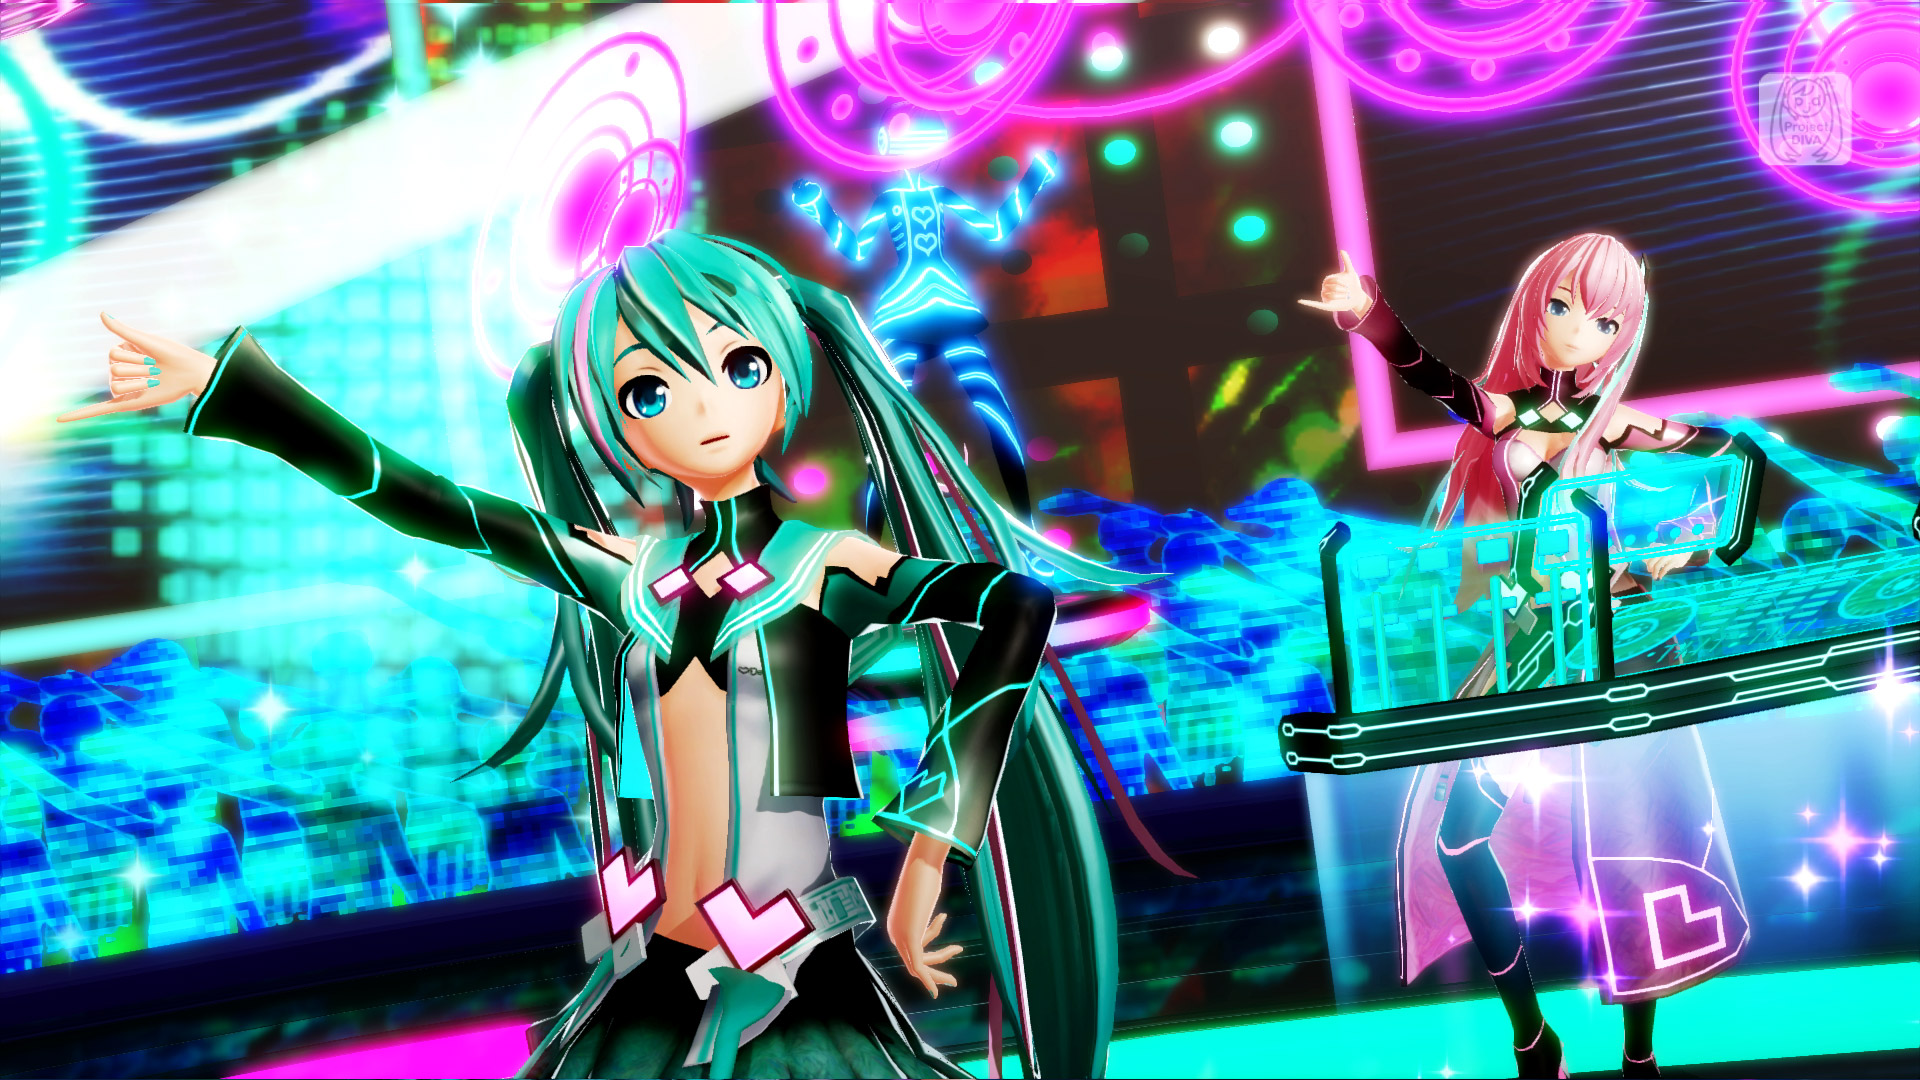 Hatsune miku project diva x out now in the americas and europe for ps4 and ps vita segalization - Hatsune miku project diva x ...